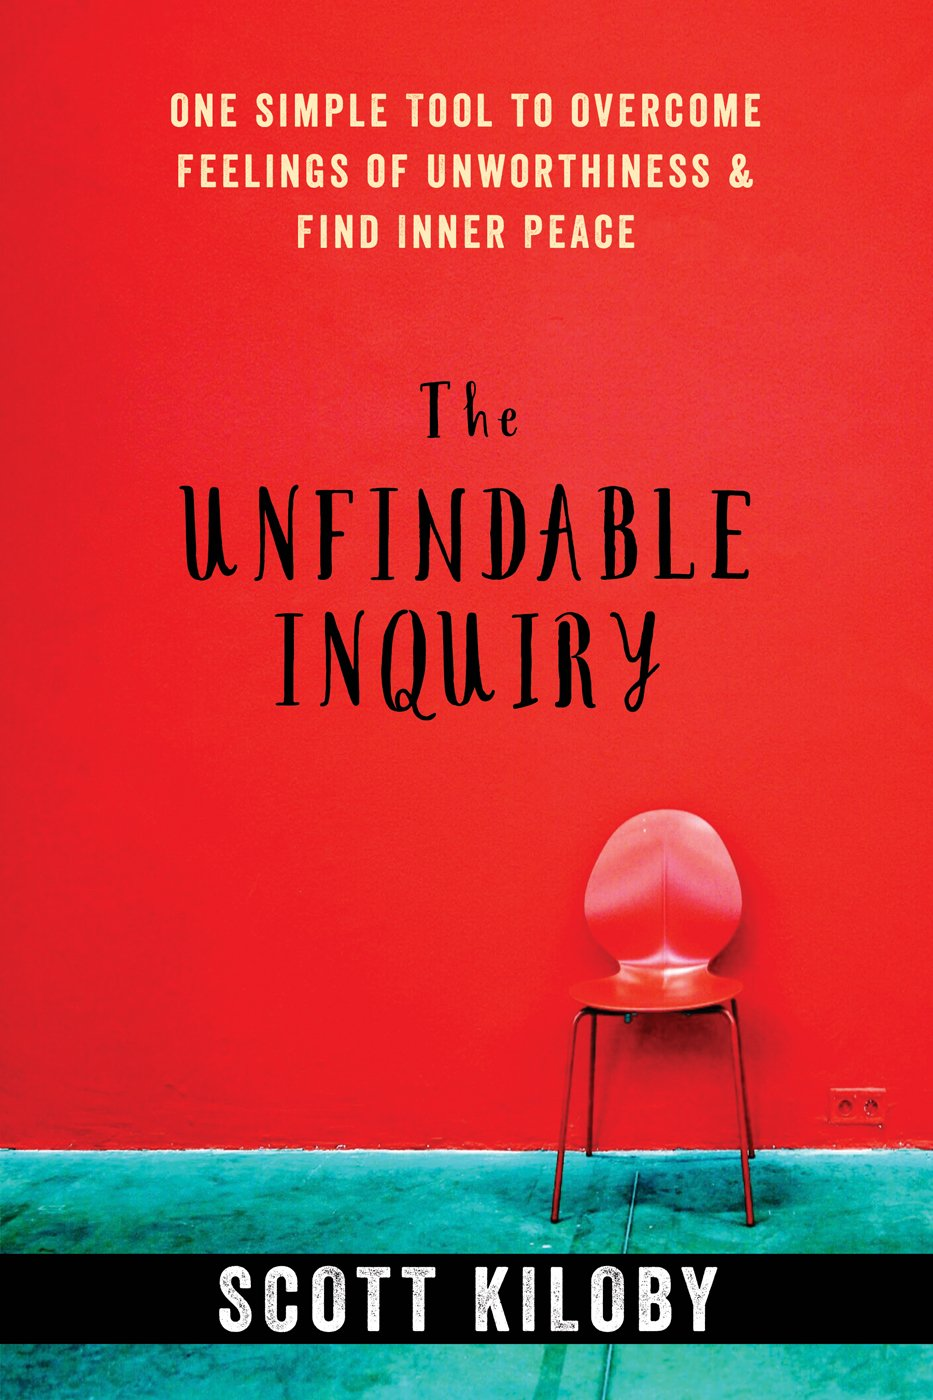 Download The Unfindable Inquiry: One Simple Tool to Overcome Feelings of Unworthiness and Find Inner Peace ebook